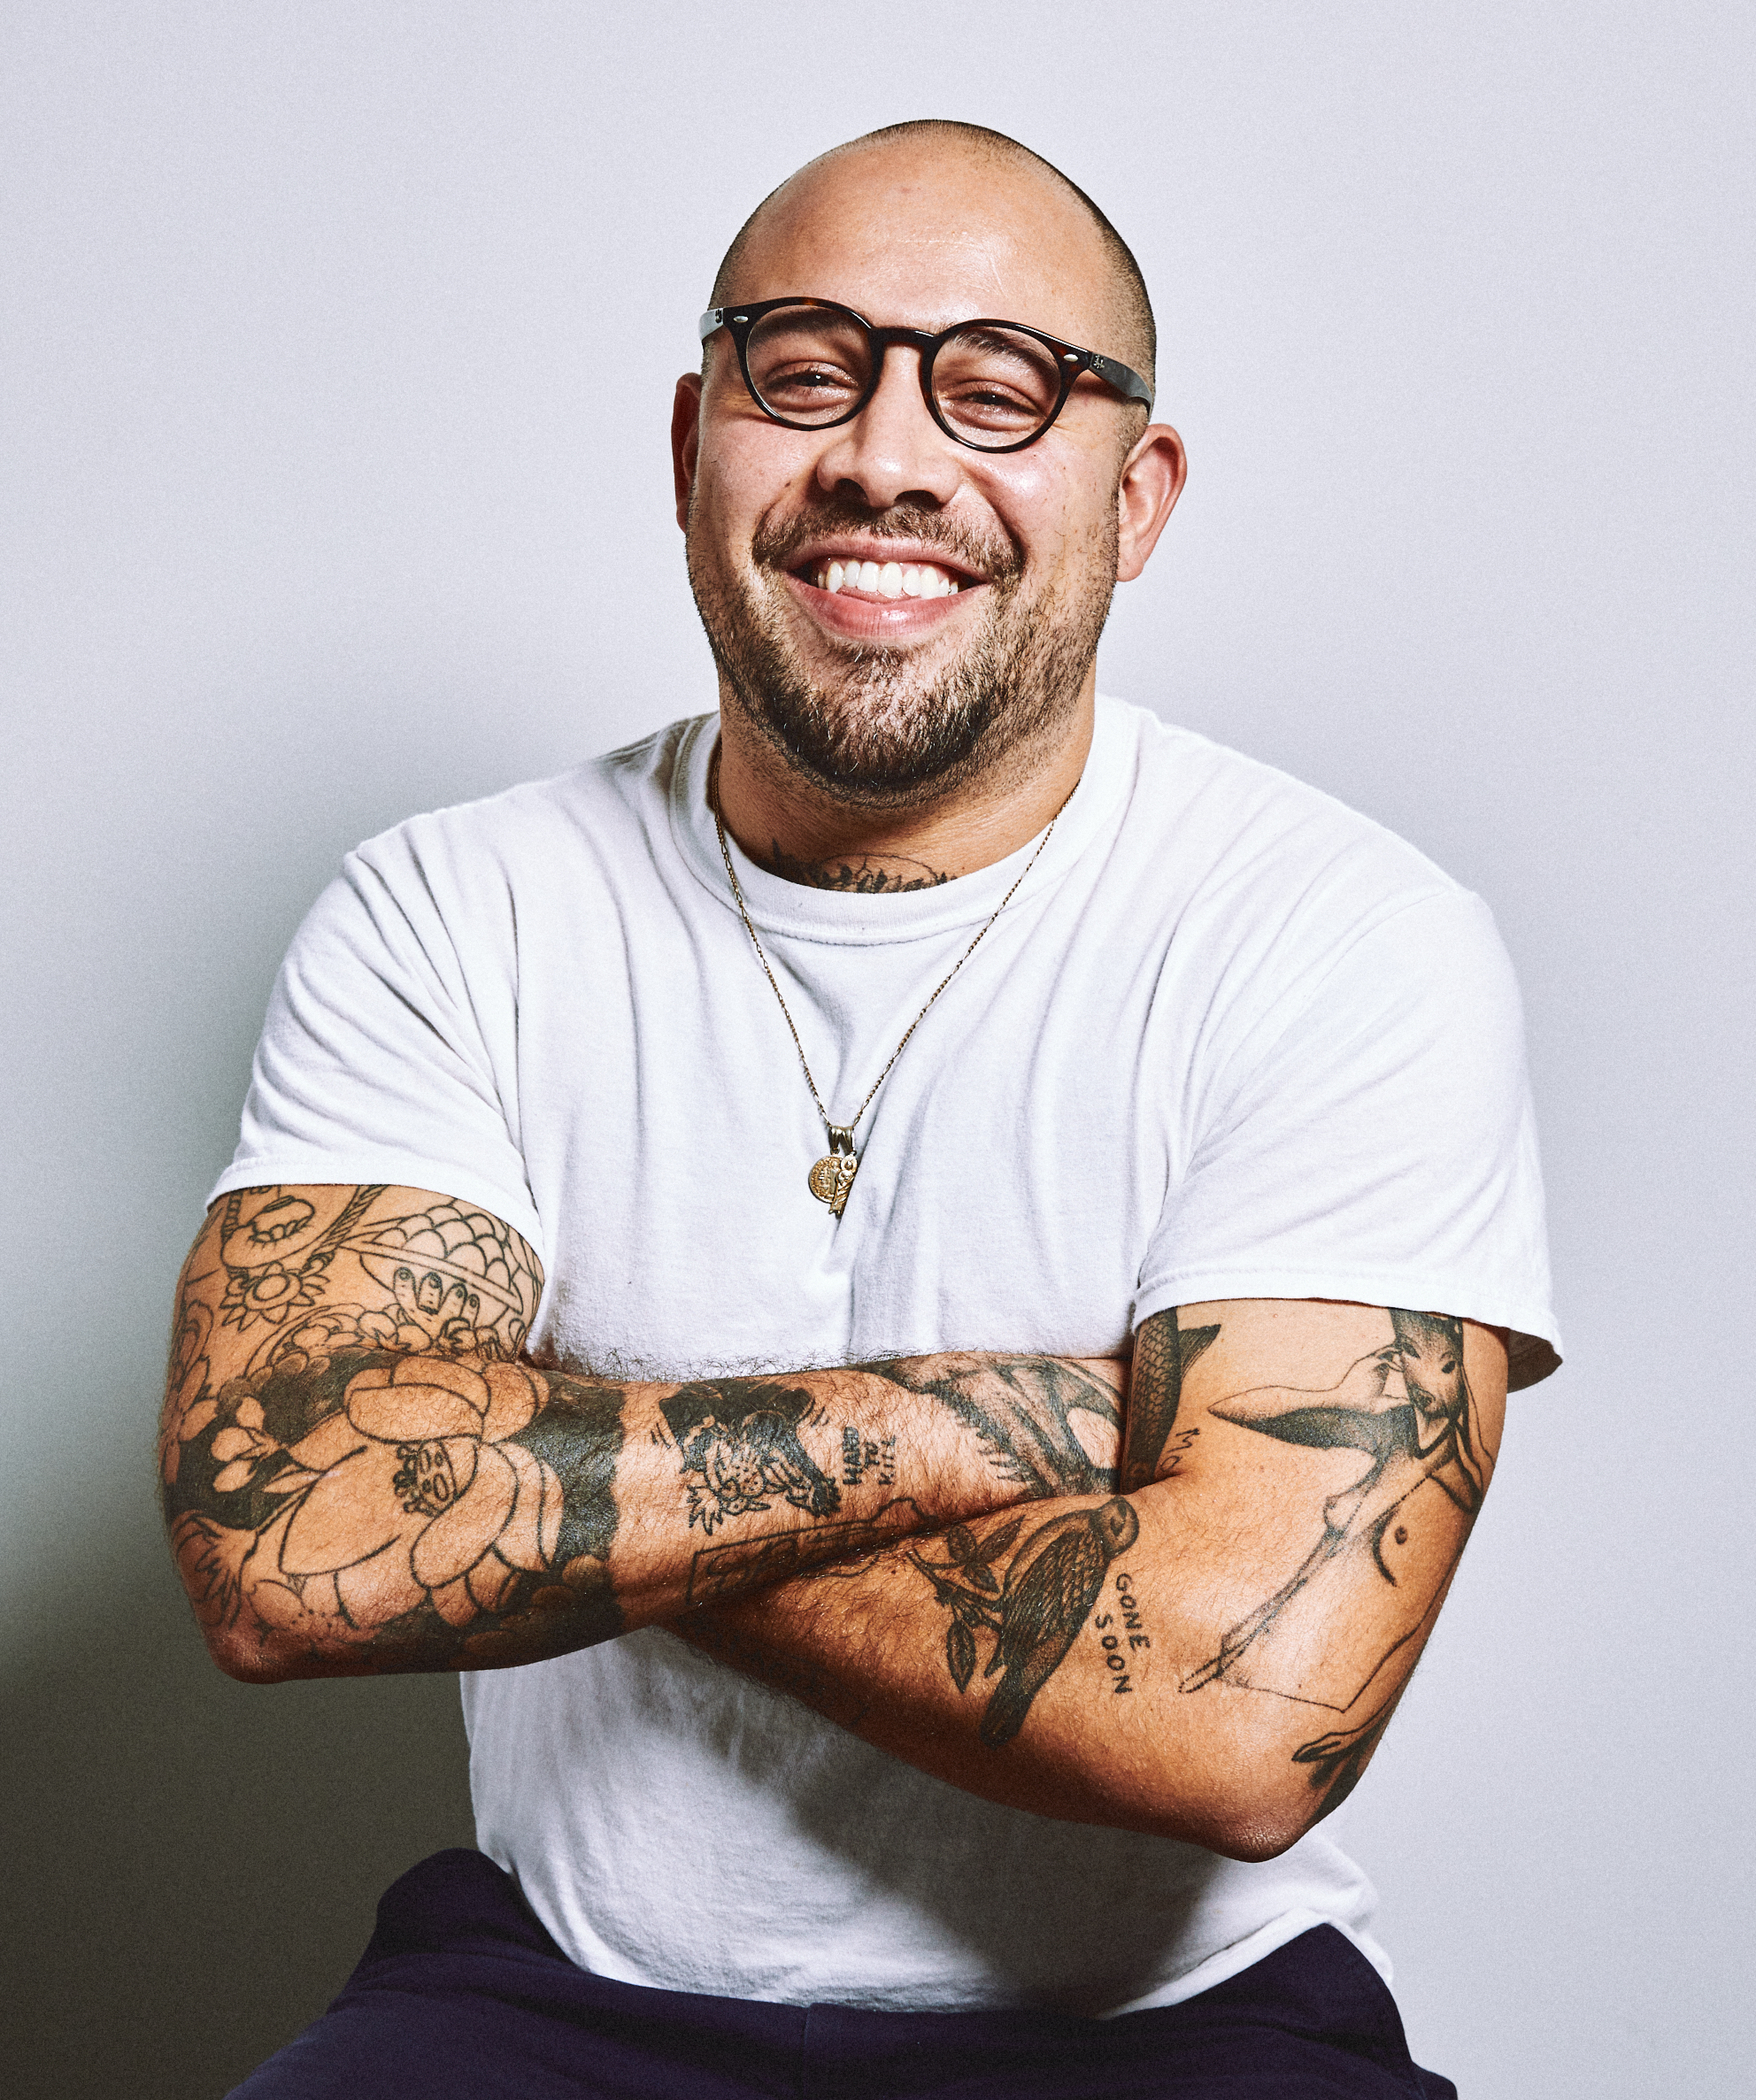 Luke Reyes, Chef and founder